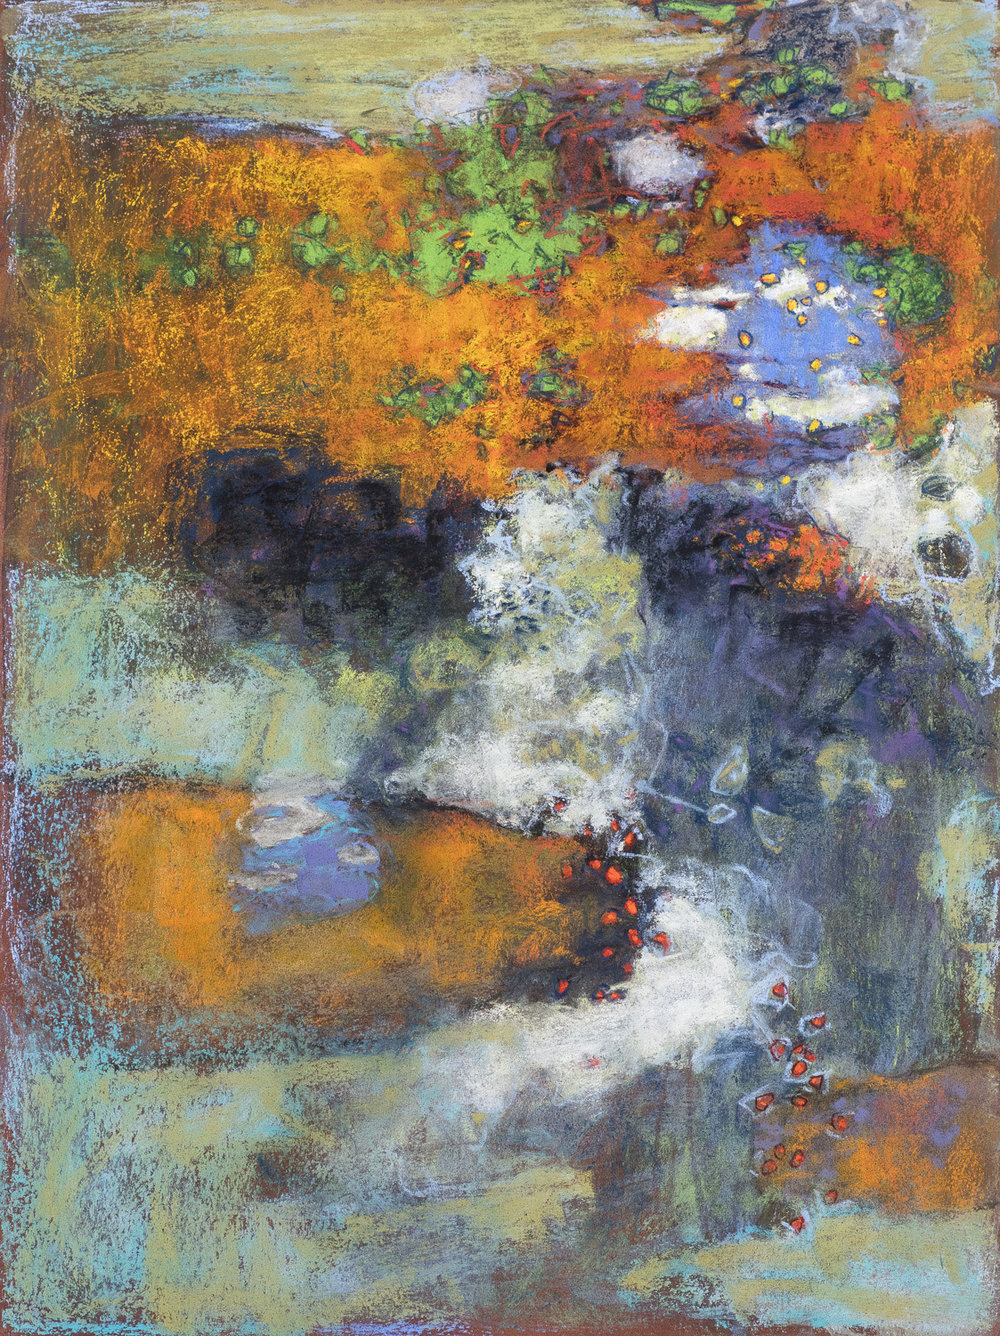 Wandering | pastel on paper | 16 x 12"